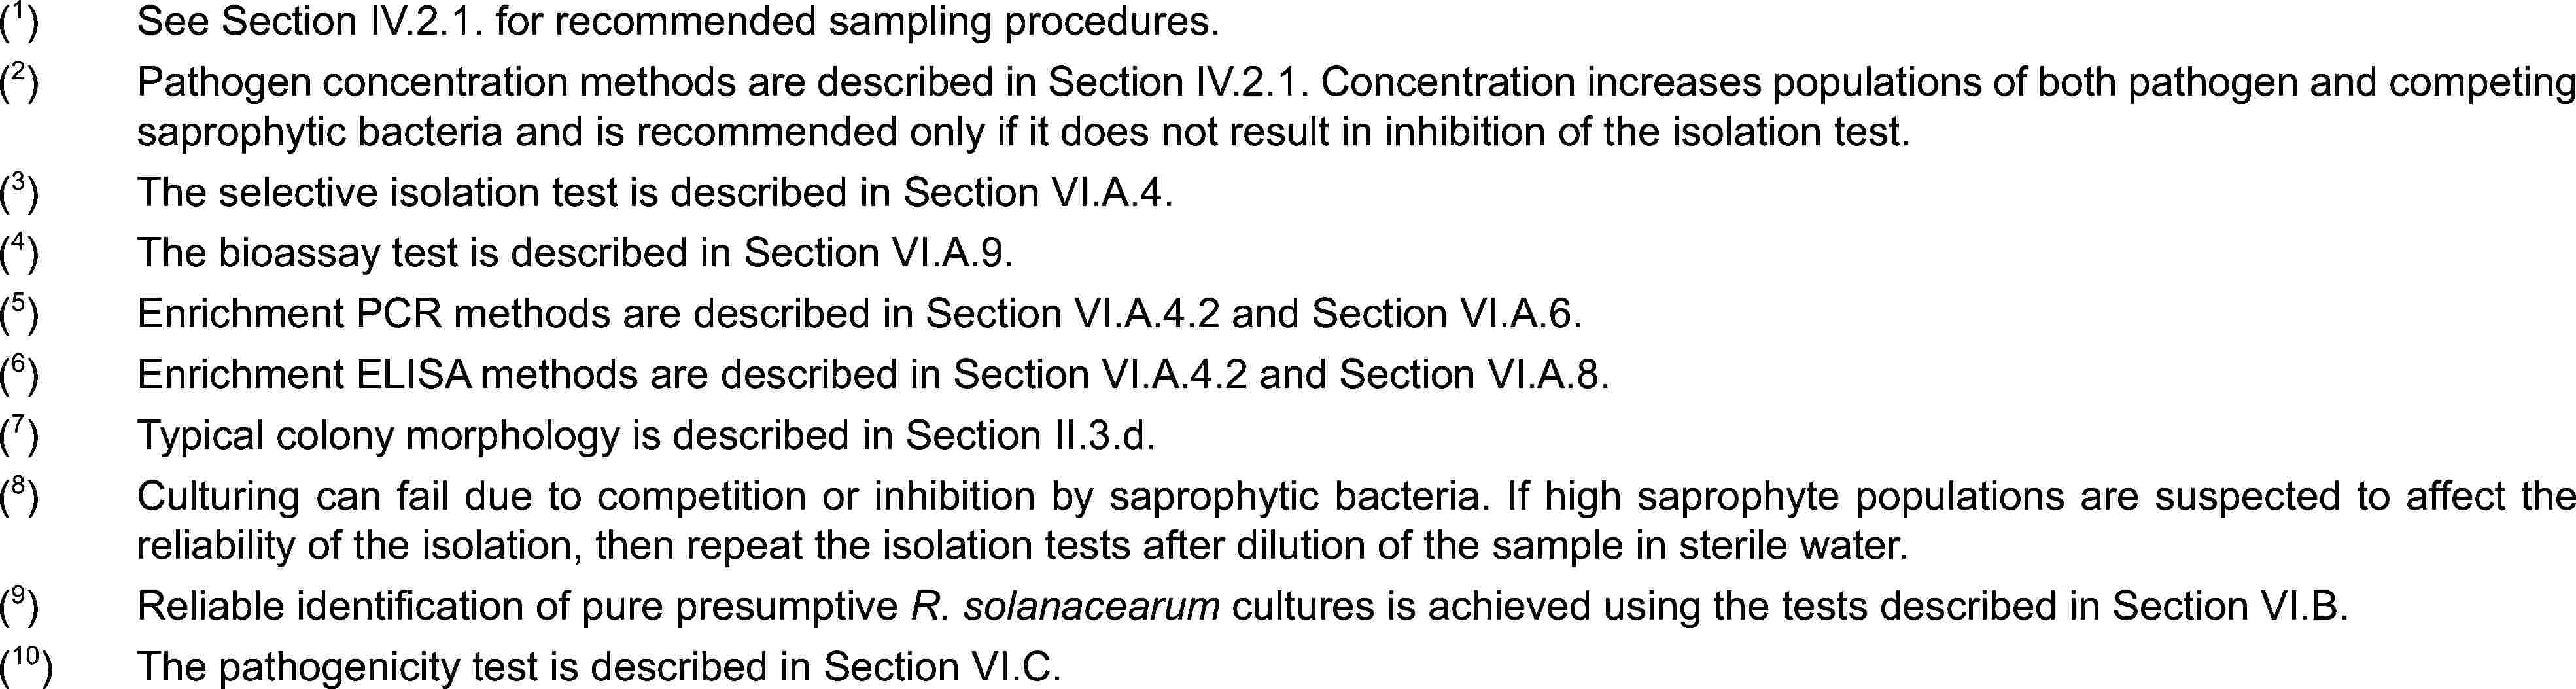 (1)See Section IV.2.1. for recommended sampling procedures.(2)Pathogen concentration methods are described in Section IV.2.1. Concentration increases populations of both pathogen and competing saprophytic bacteria and is recommended only if it does not result in inhibition of the isolation test.(3)The selective isolation test is described in Section VI.A.4.(4)The bioassay test is described in Section VI.A.9.(5)Enrichment PCR methods are described in Section VI.A.4.2 and Section VI.A.6.(6)Enrichment ELISA methods are described in Section VI.A.4.2 and Section VI.A.8.(7)Typical colony morphology is described in Section II.3.d.(8)Culturing can fail due to competition or inhibition by saprophytic bacteria. If high saprophyte populations are suspected to affect the reliability of the isolation, then repeat the isolation tests after dilution of the sample in sterile water.(9)Reliable identification of pure presumptive R. solanacearum cultures is achieved using the tests described in Section VI.B.(10)The pathogenicity test is described in Section VI.C.